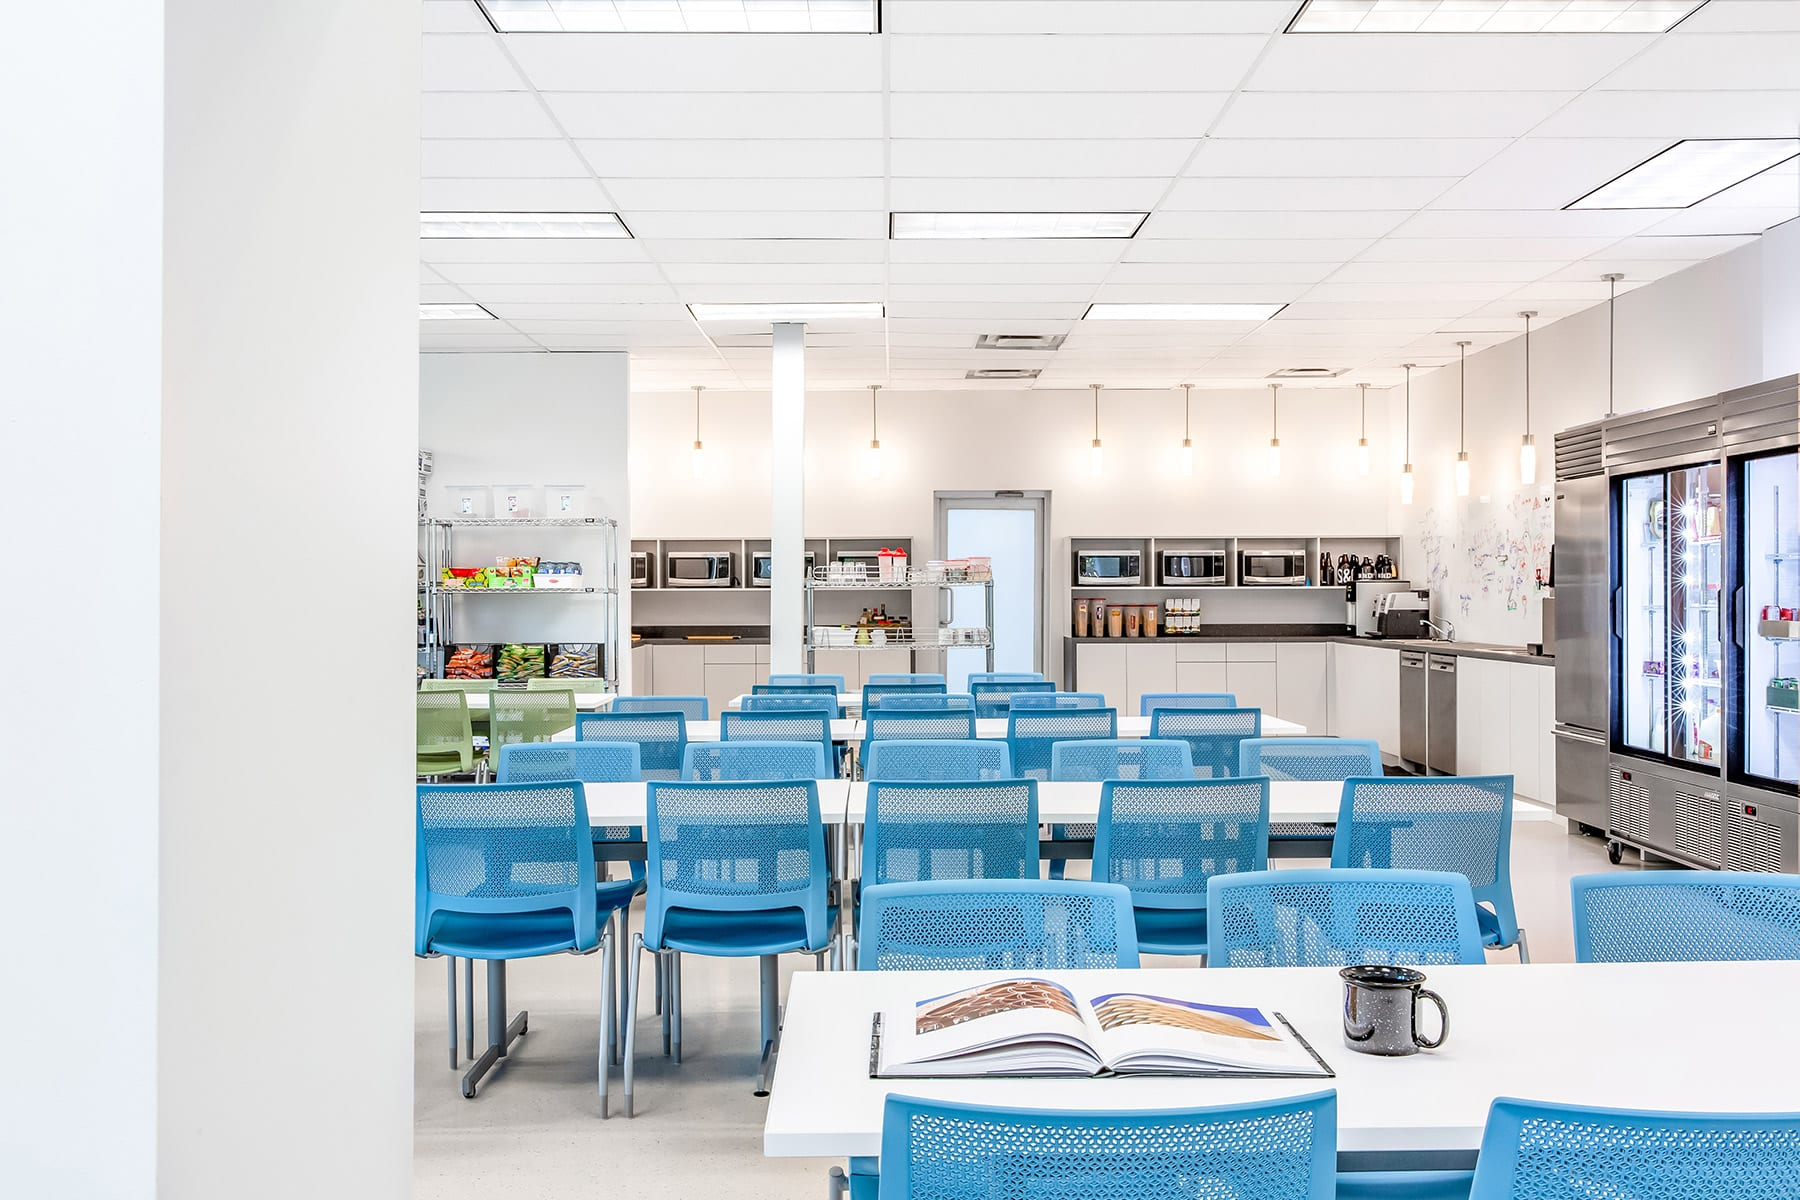 Cafeteria at Arista Networks' renovated office in Glenlyon, Burnaby BC